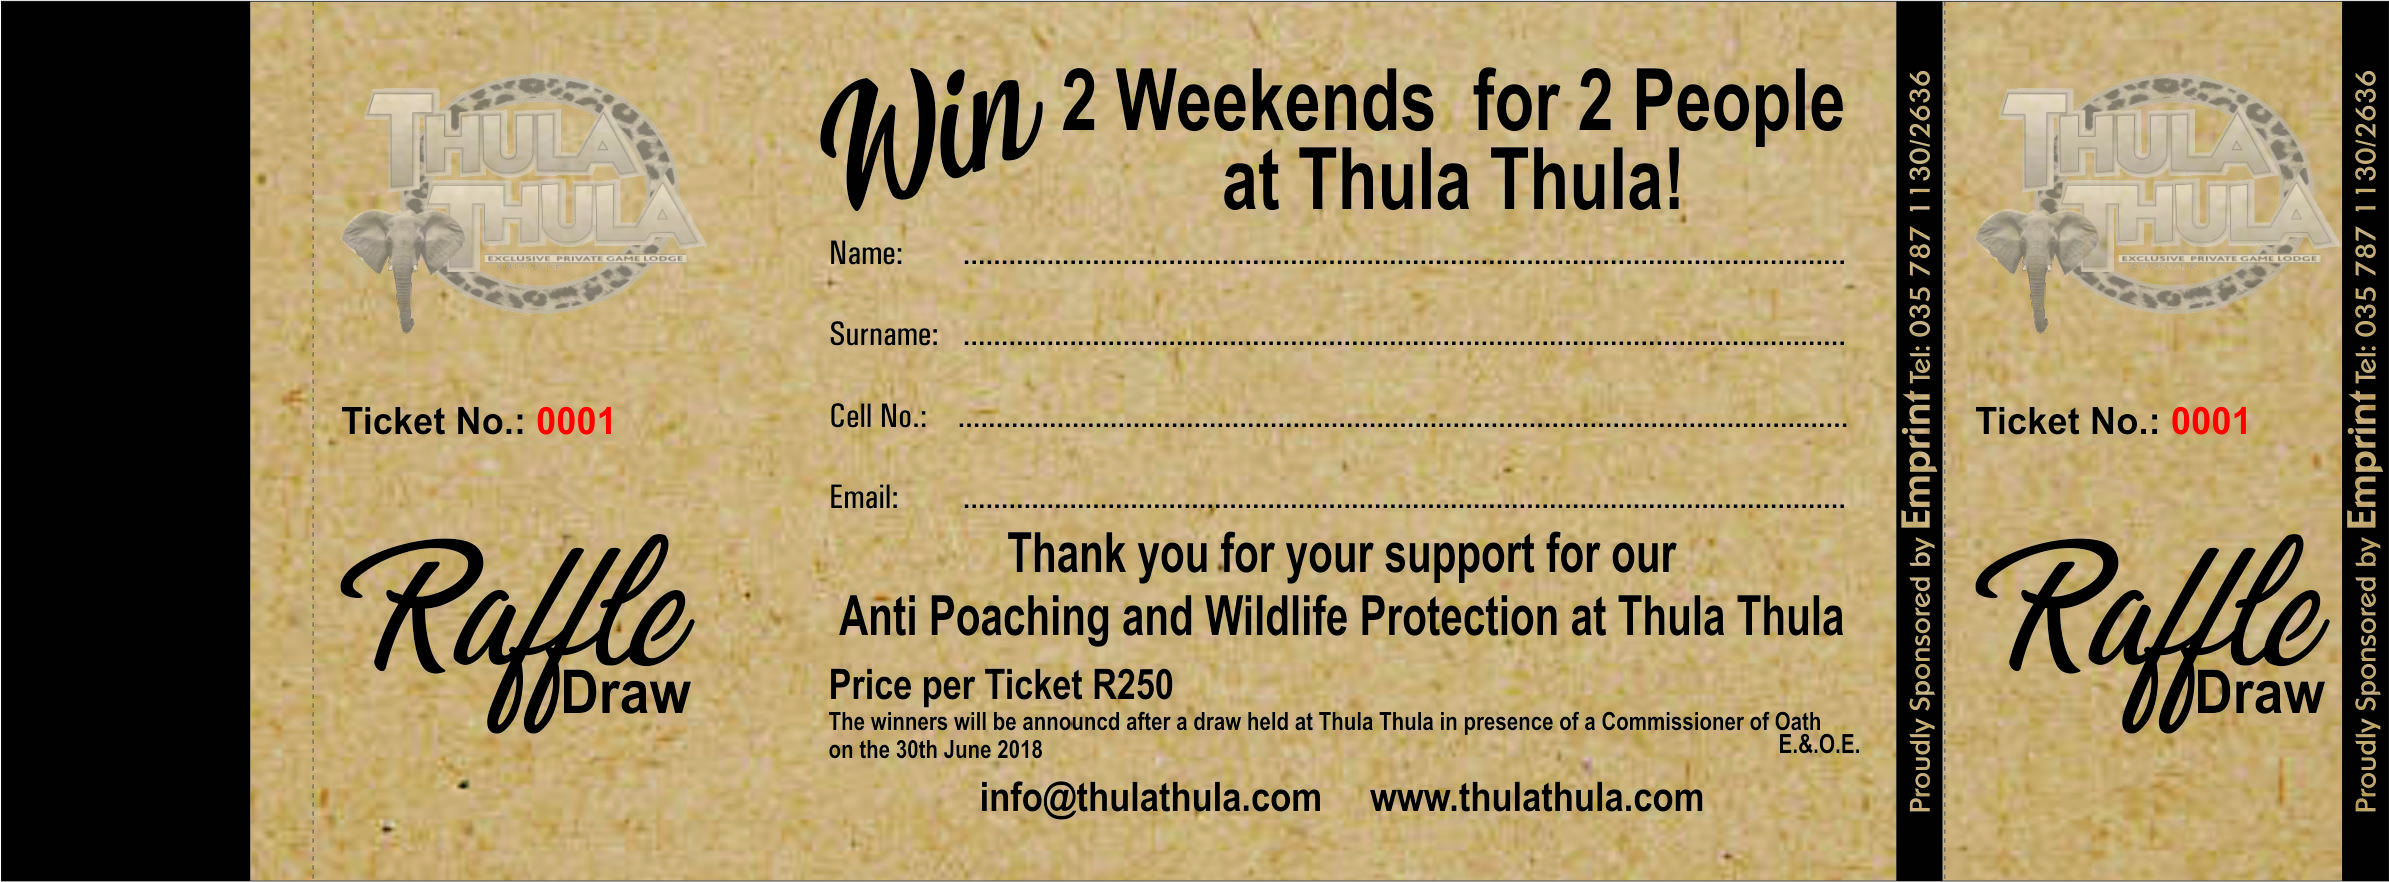 raffle tickets now available thula thula best south african safari